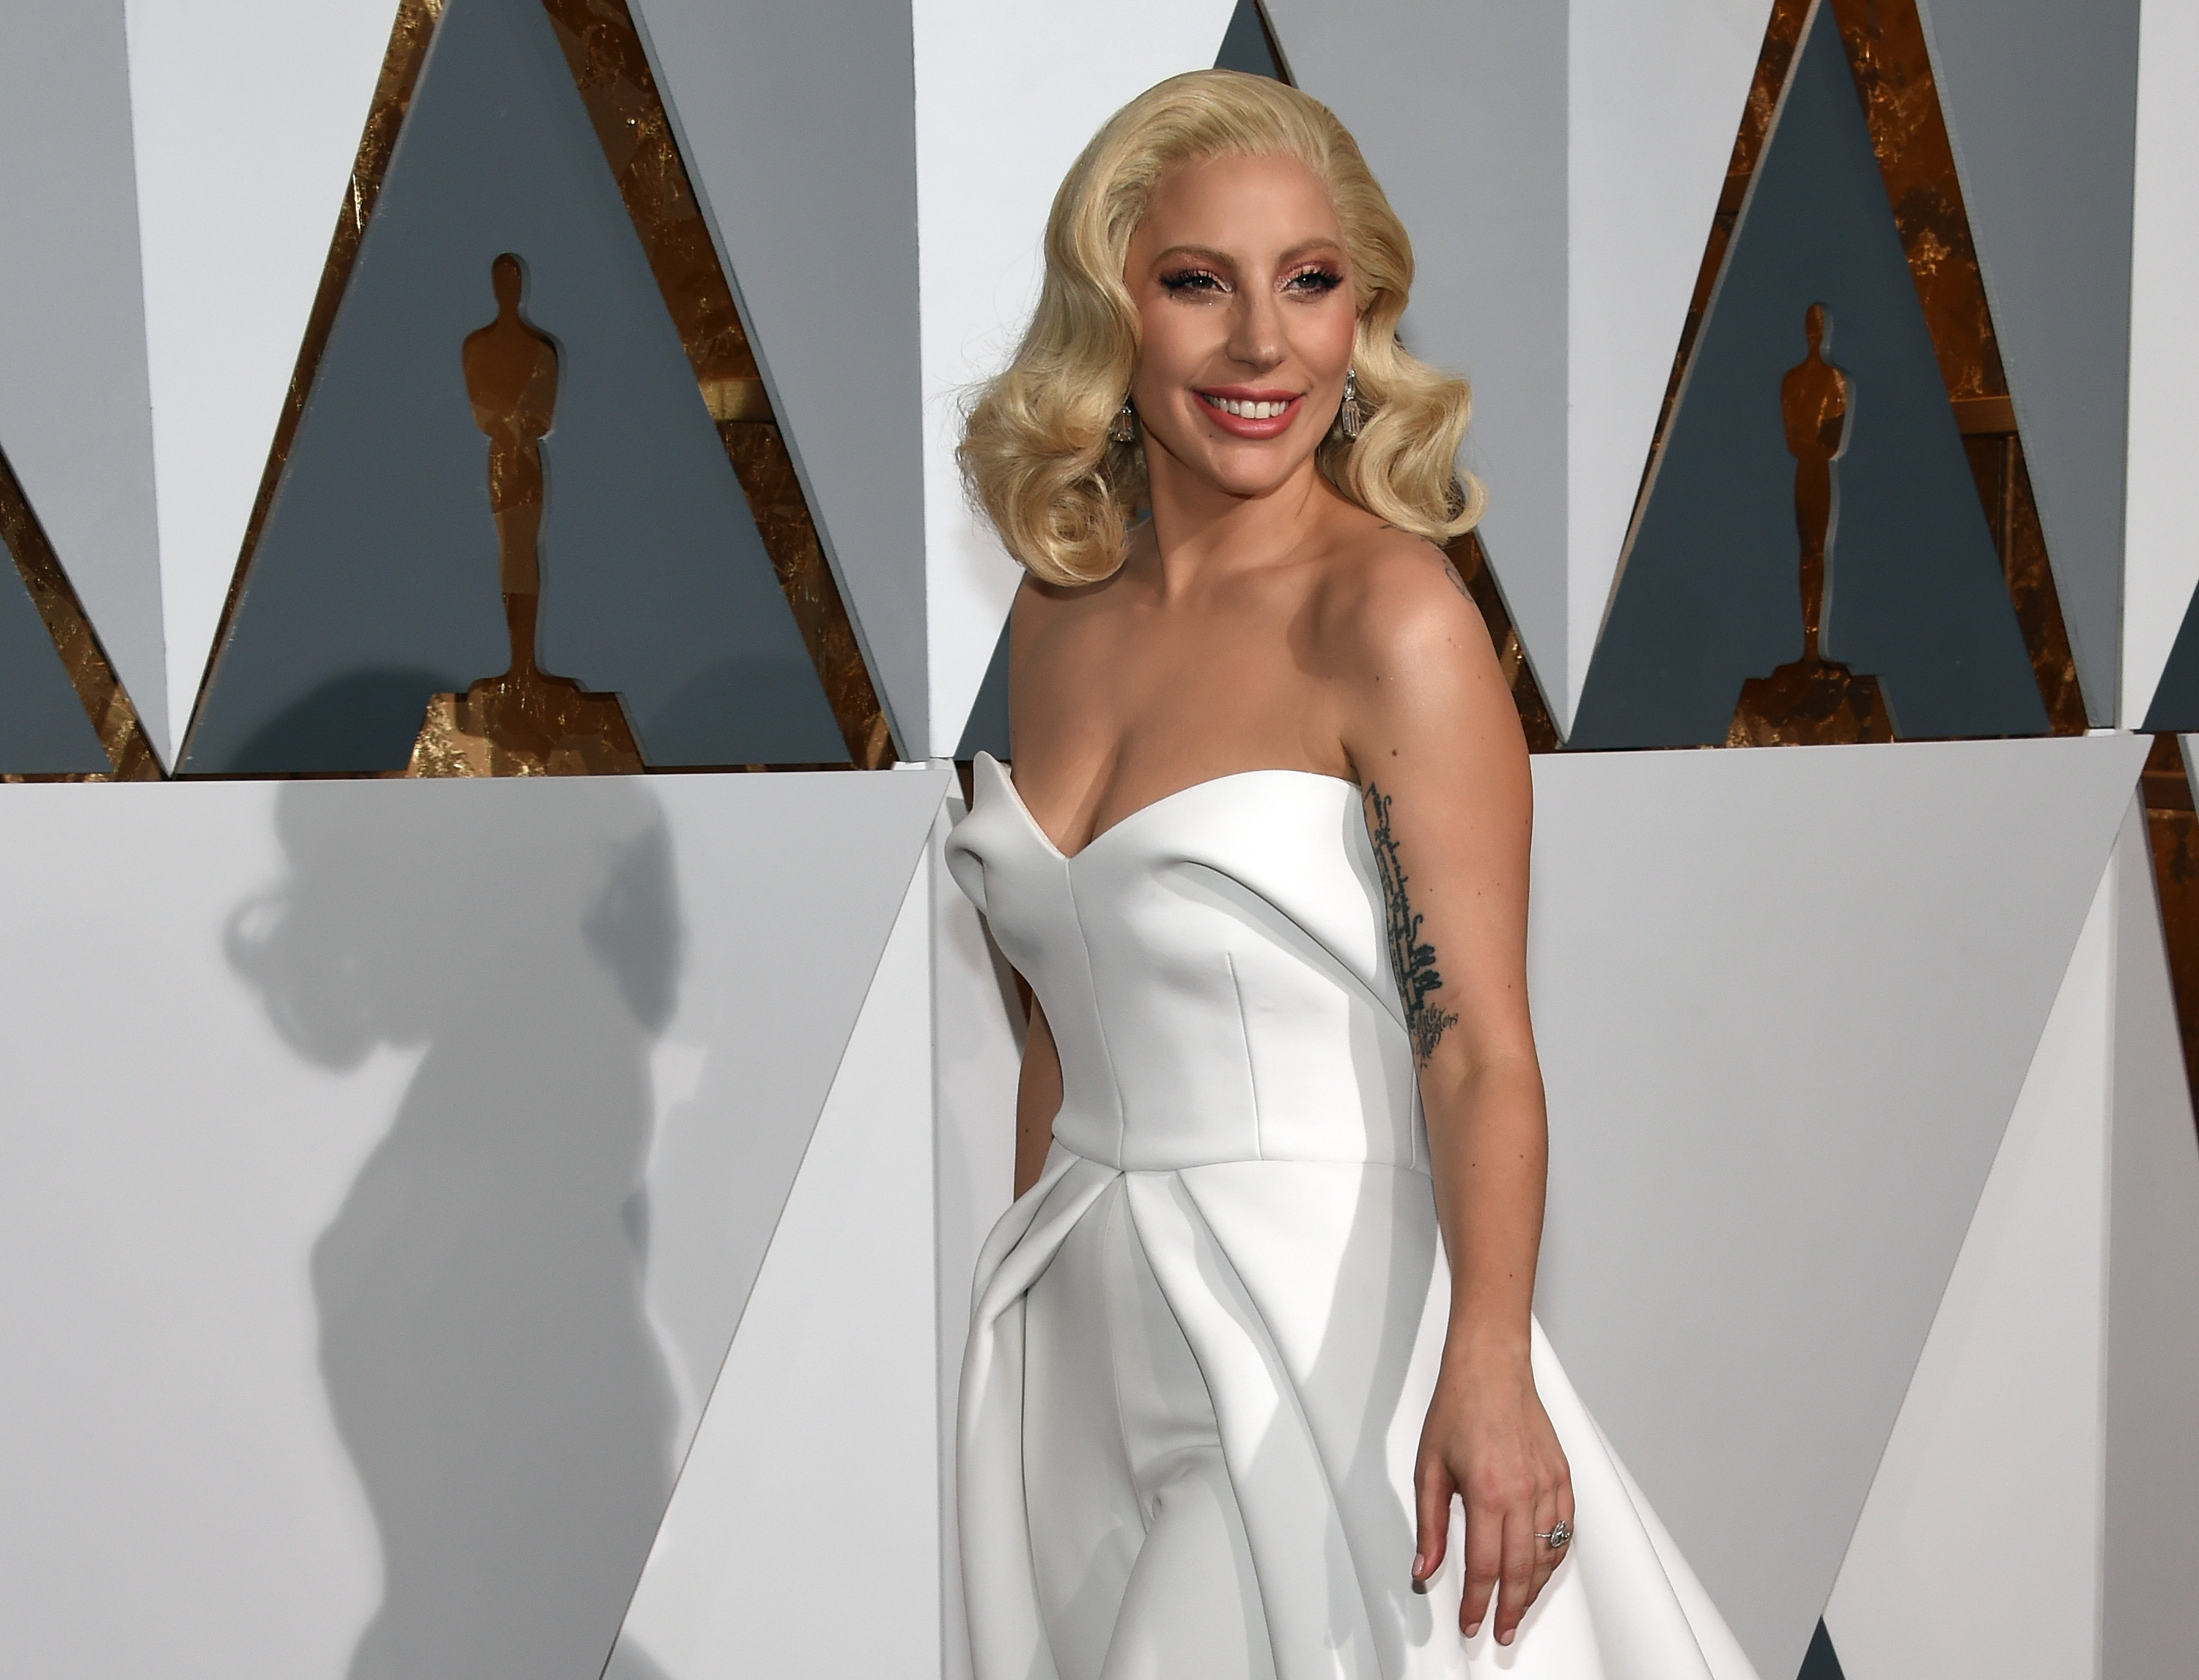 Recording artist/actress Lady Gaga attends the 88th Annual Academy Awards at Hollywood & Highland Center on February 28, 2016 in Hollywood, California.